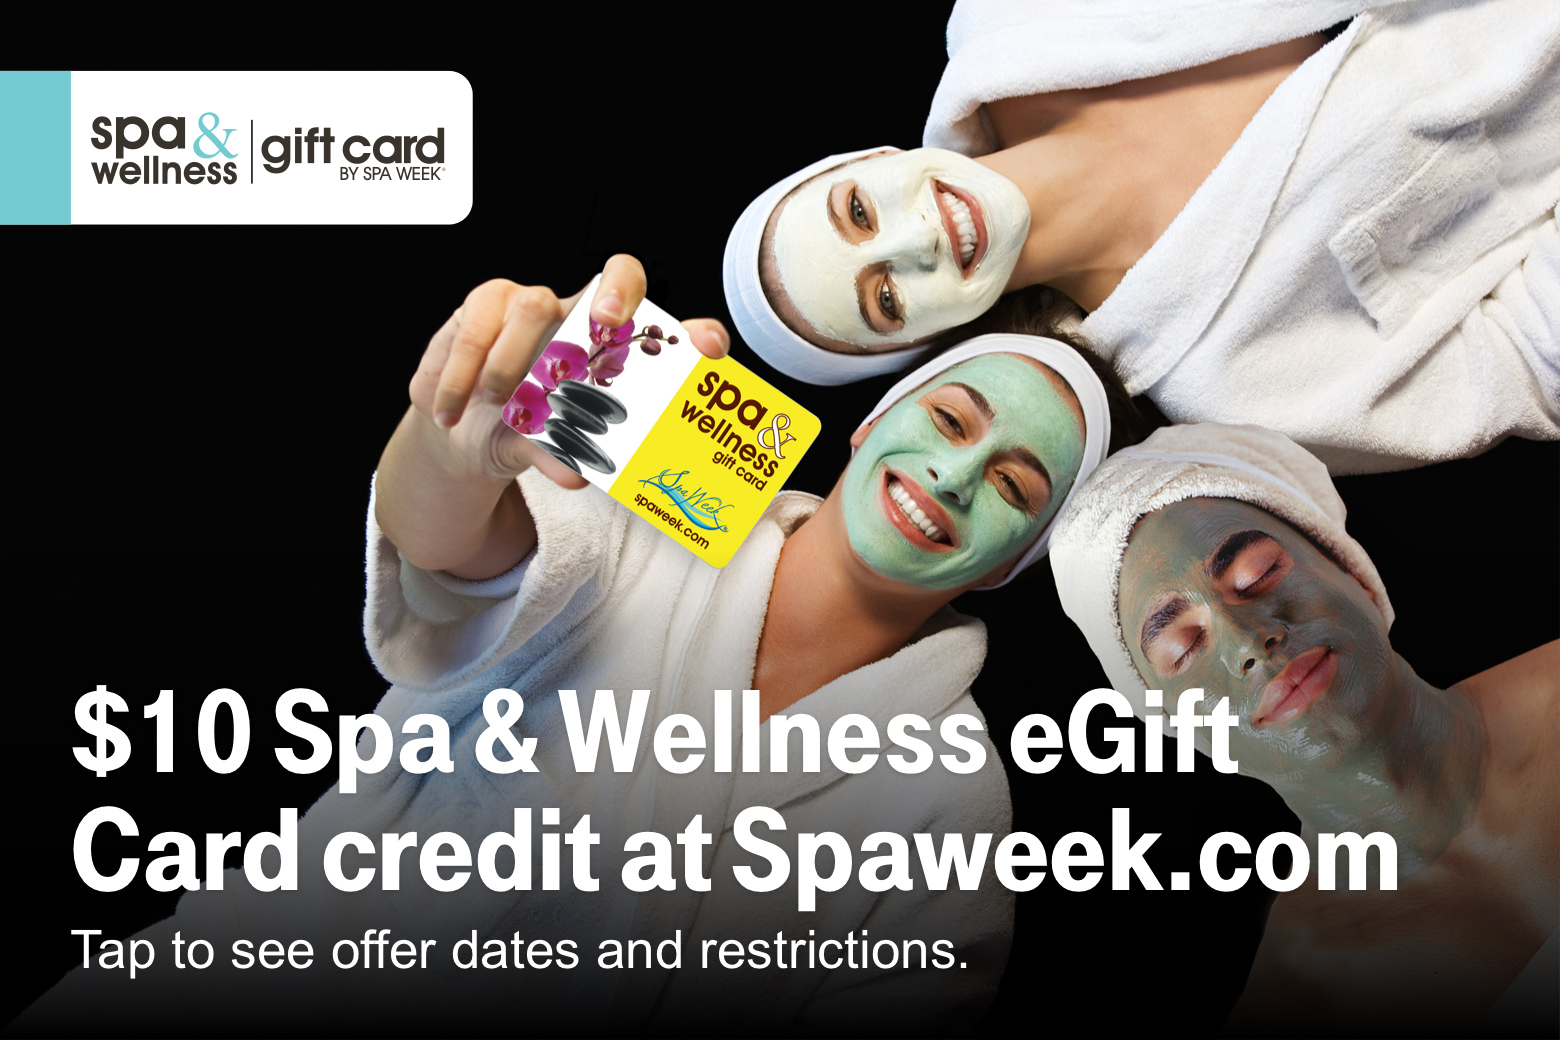 Spa & wellness gift card by Spa Week. $10 Spa & Wellness eGift Card credit at Spaweek.com Tap to see offer dates and restrictions.